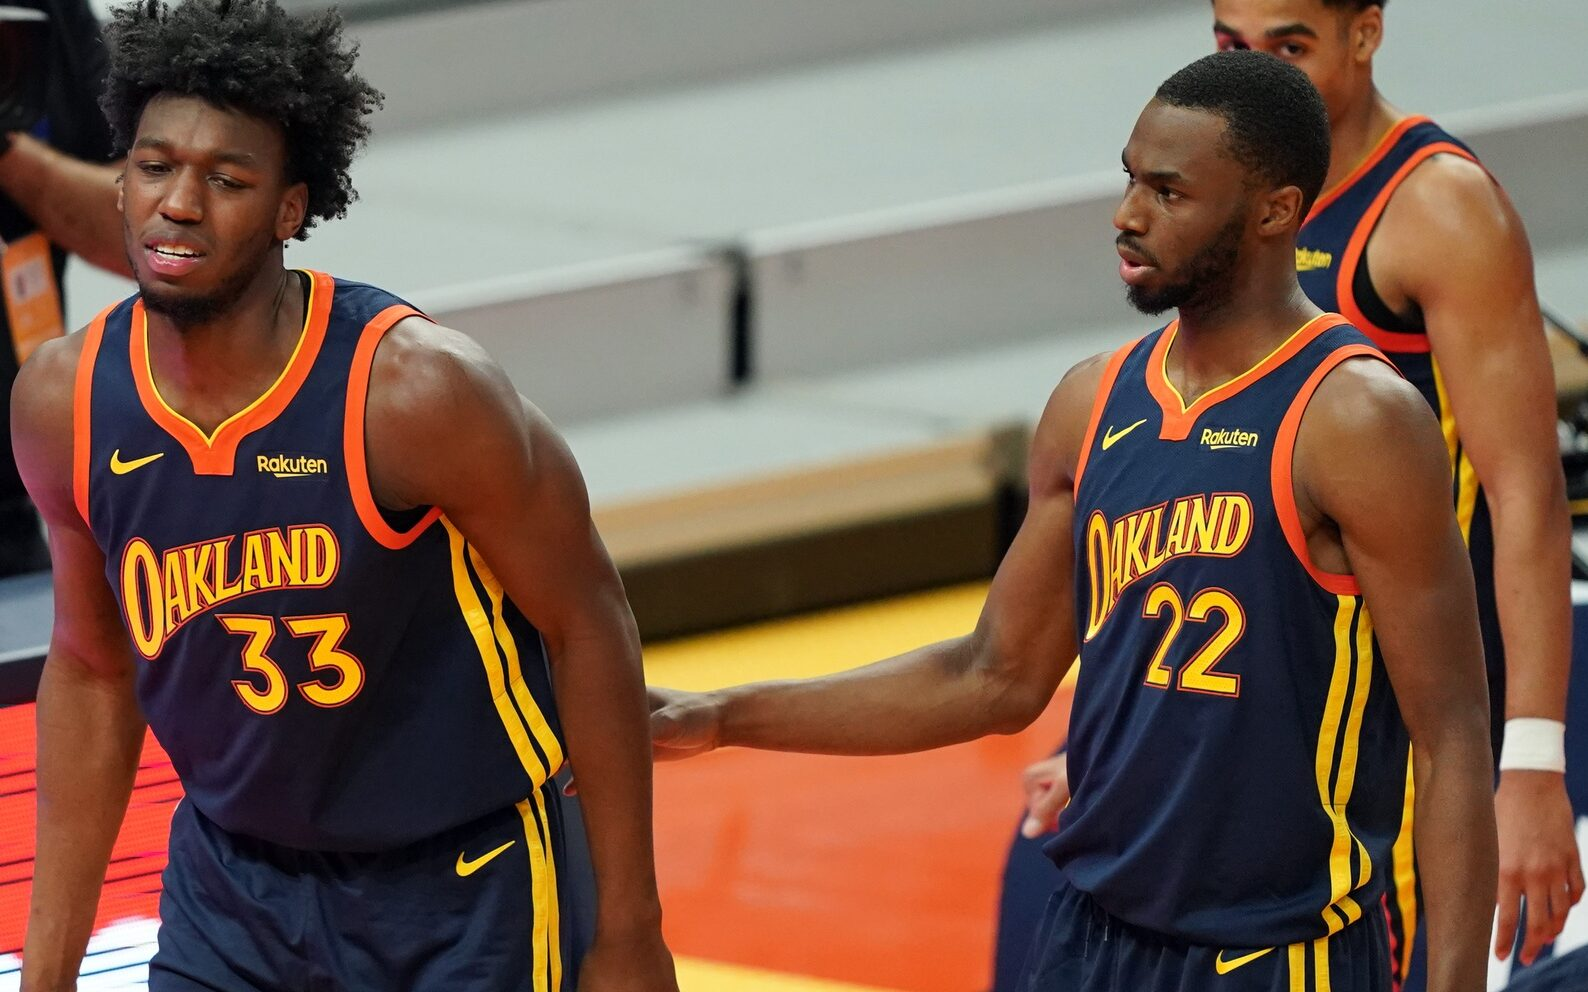 James Wiseman and Andrew Wiggins